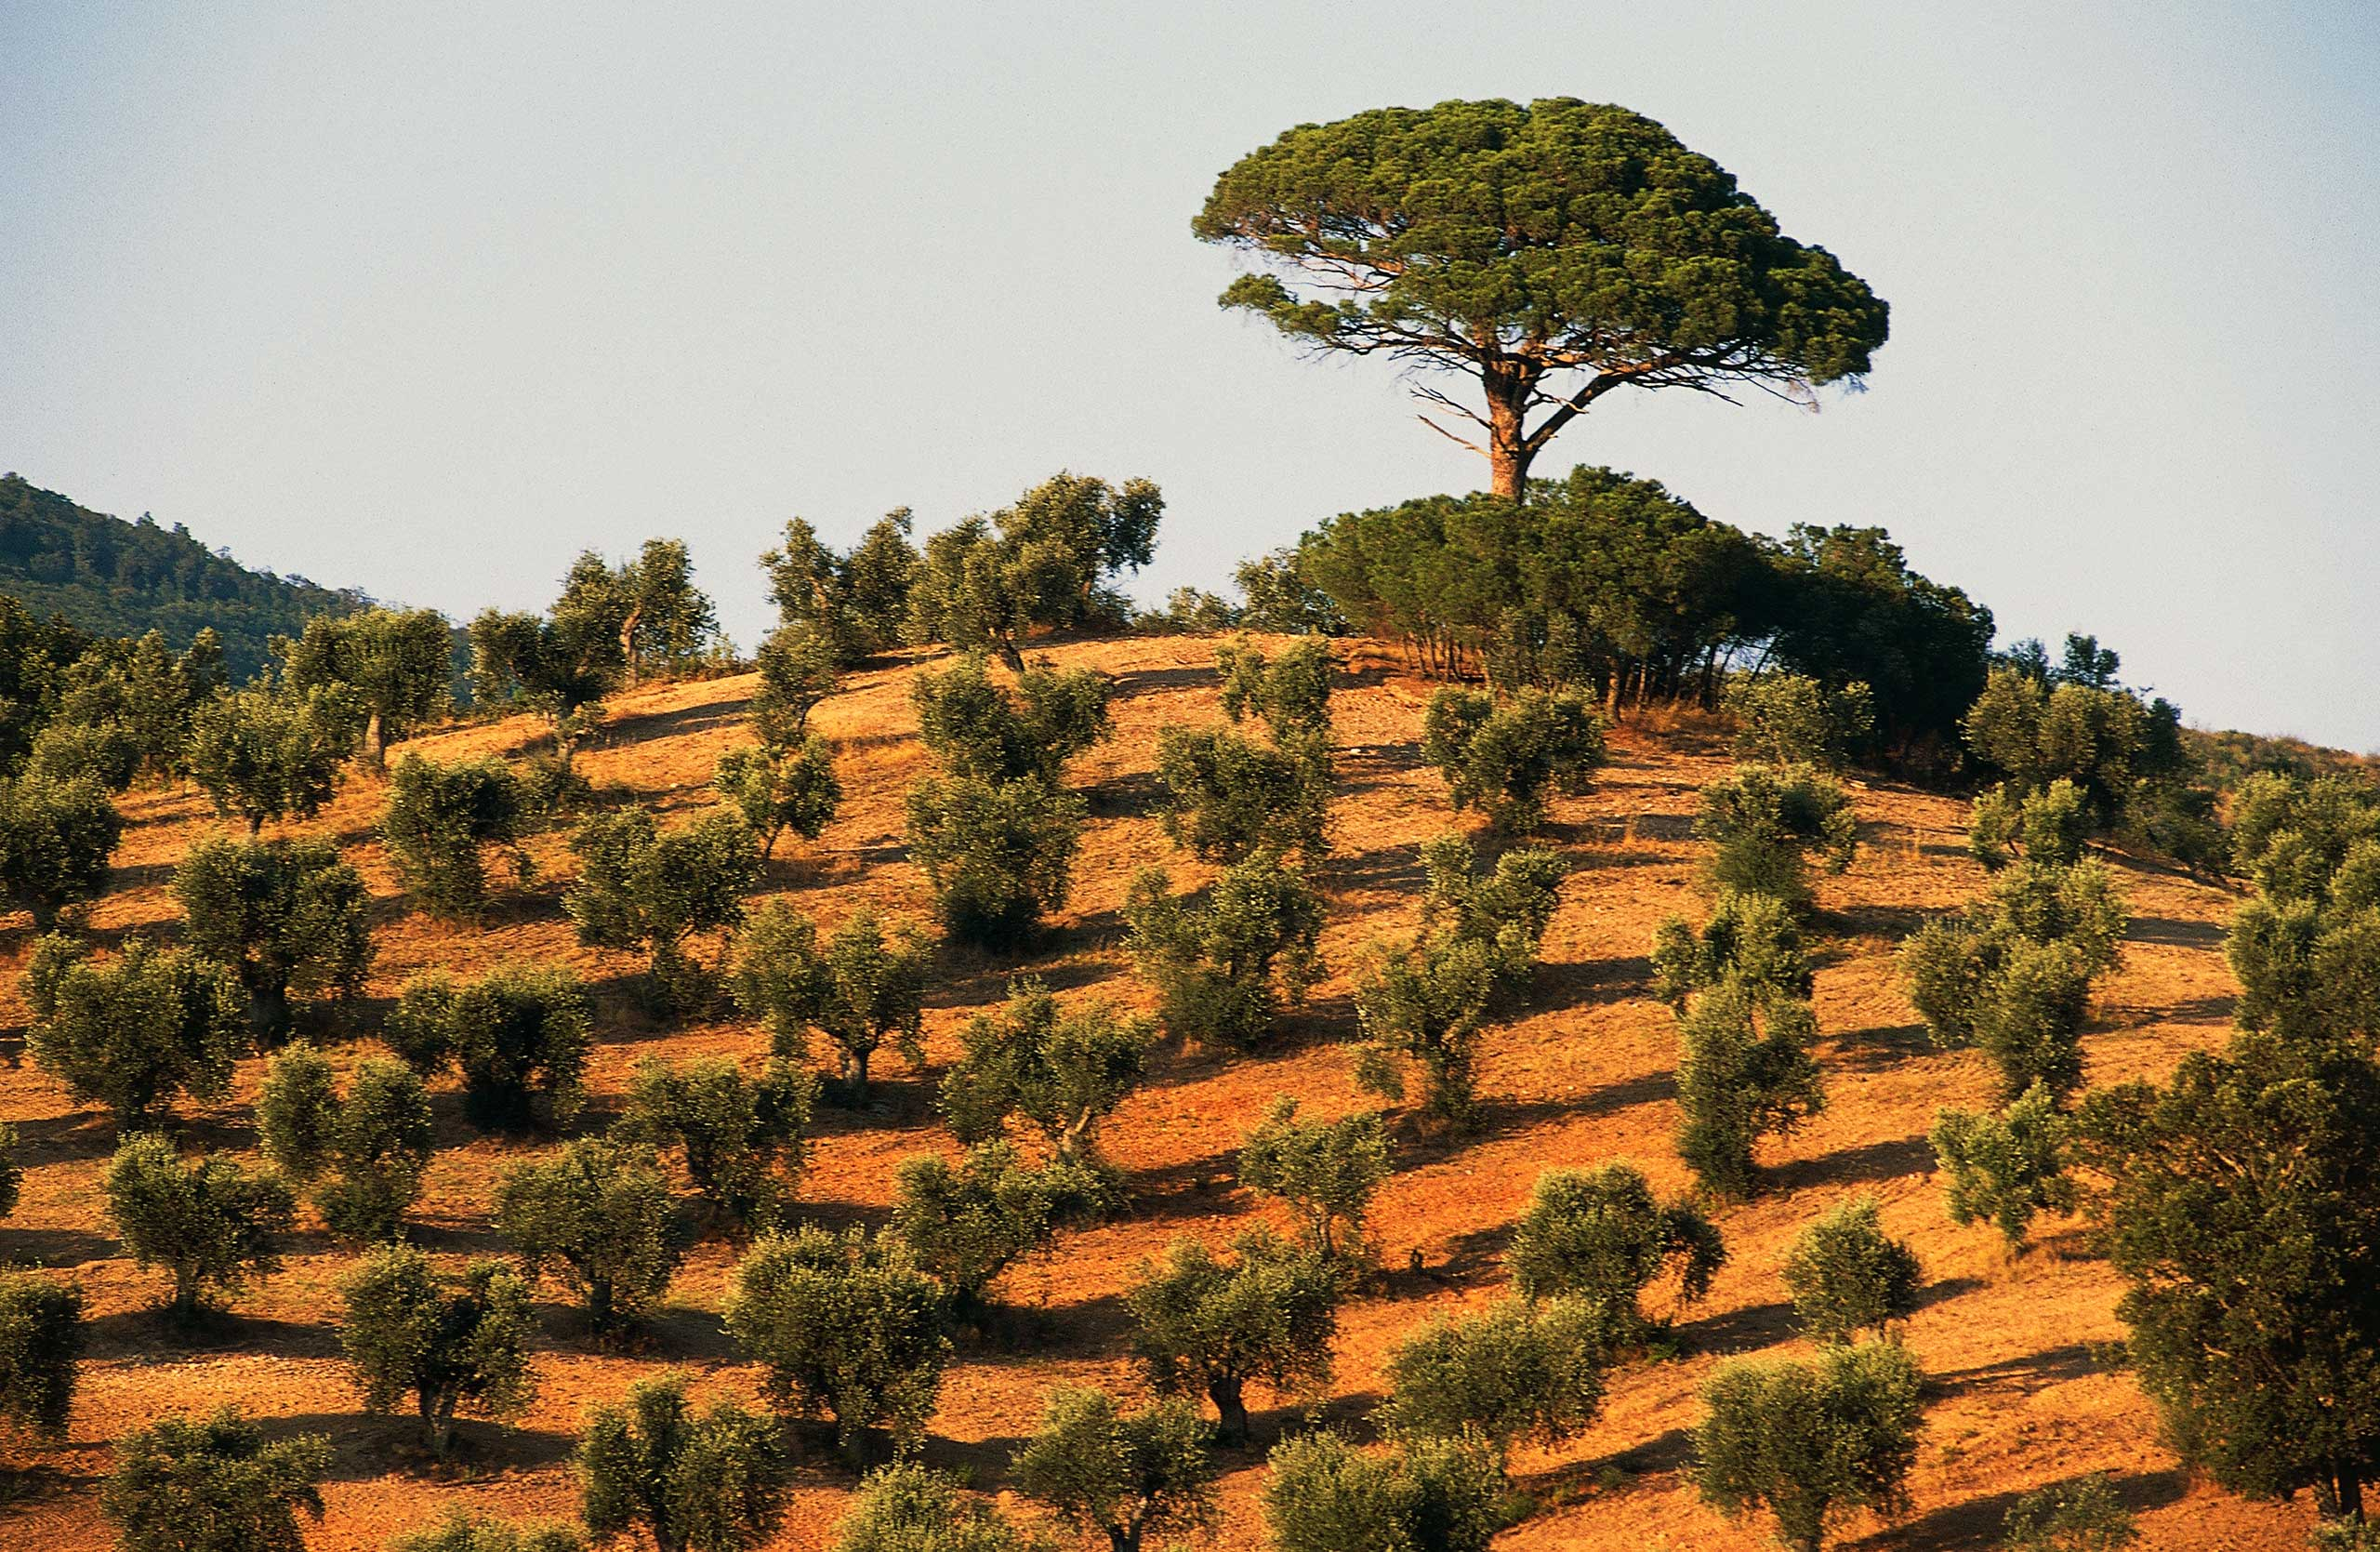 Olive trees in Tuscany, Italy.